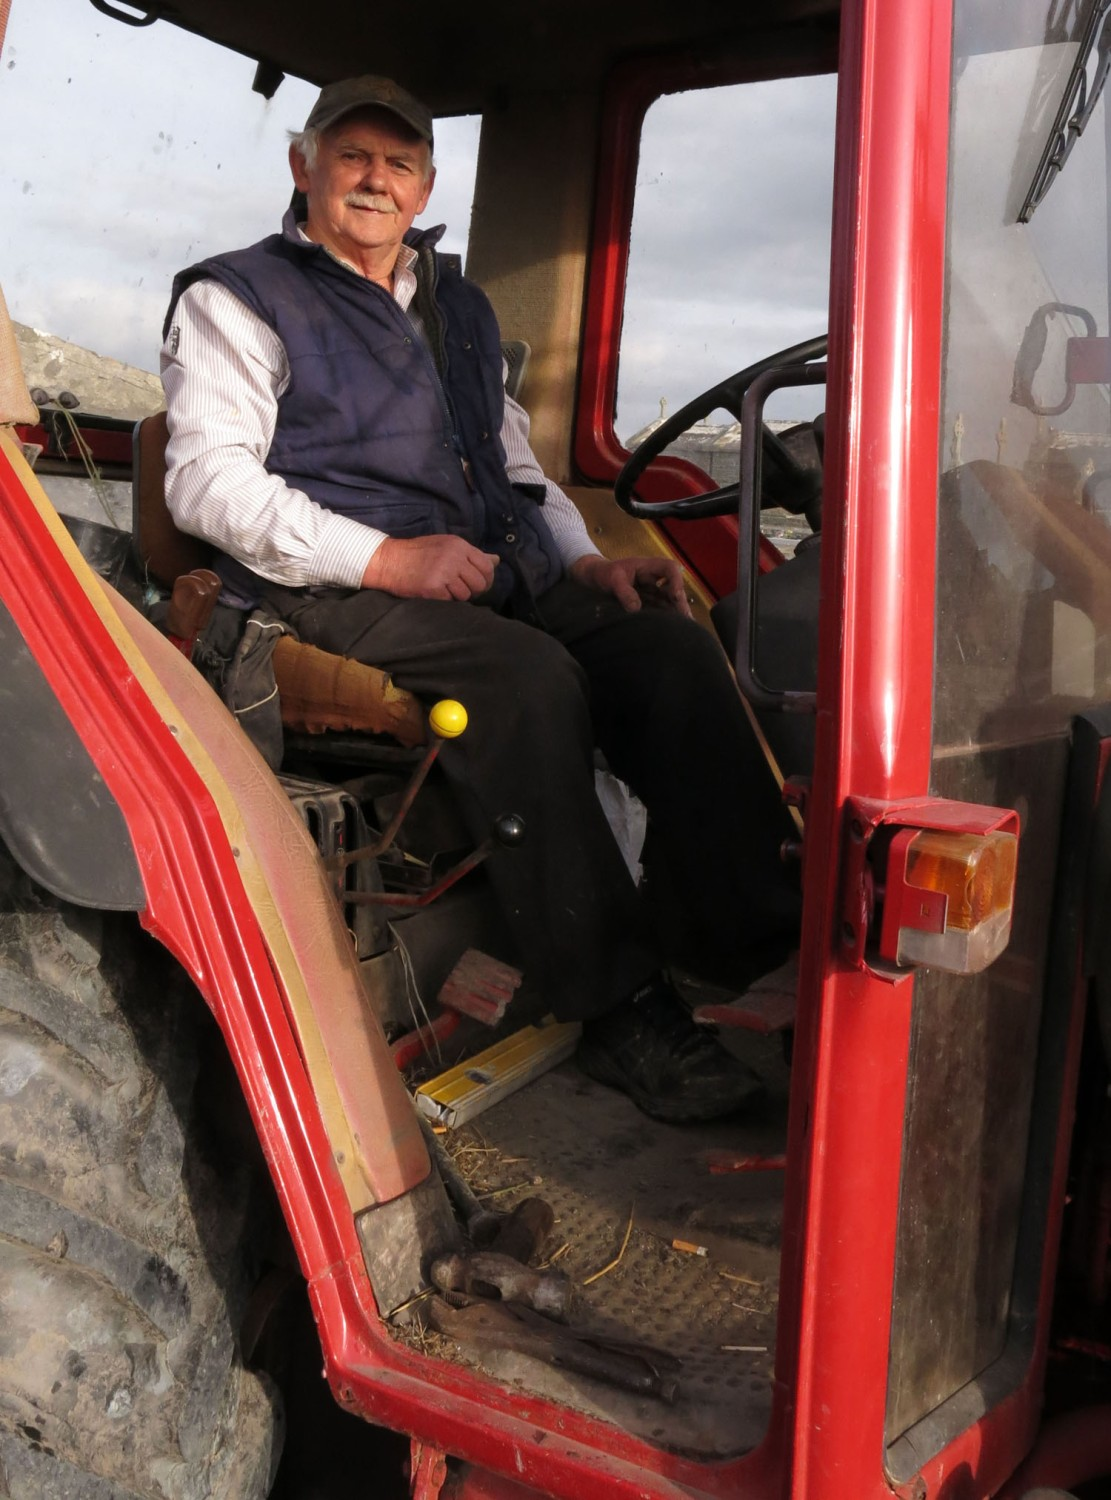 Ireland-People-Quilty-Farmer